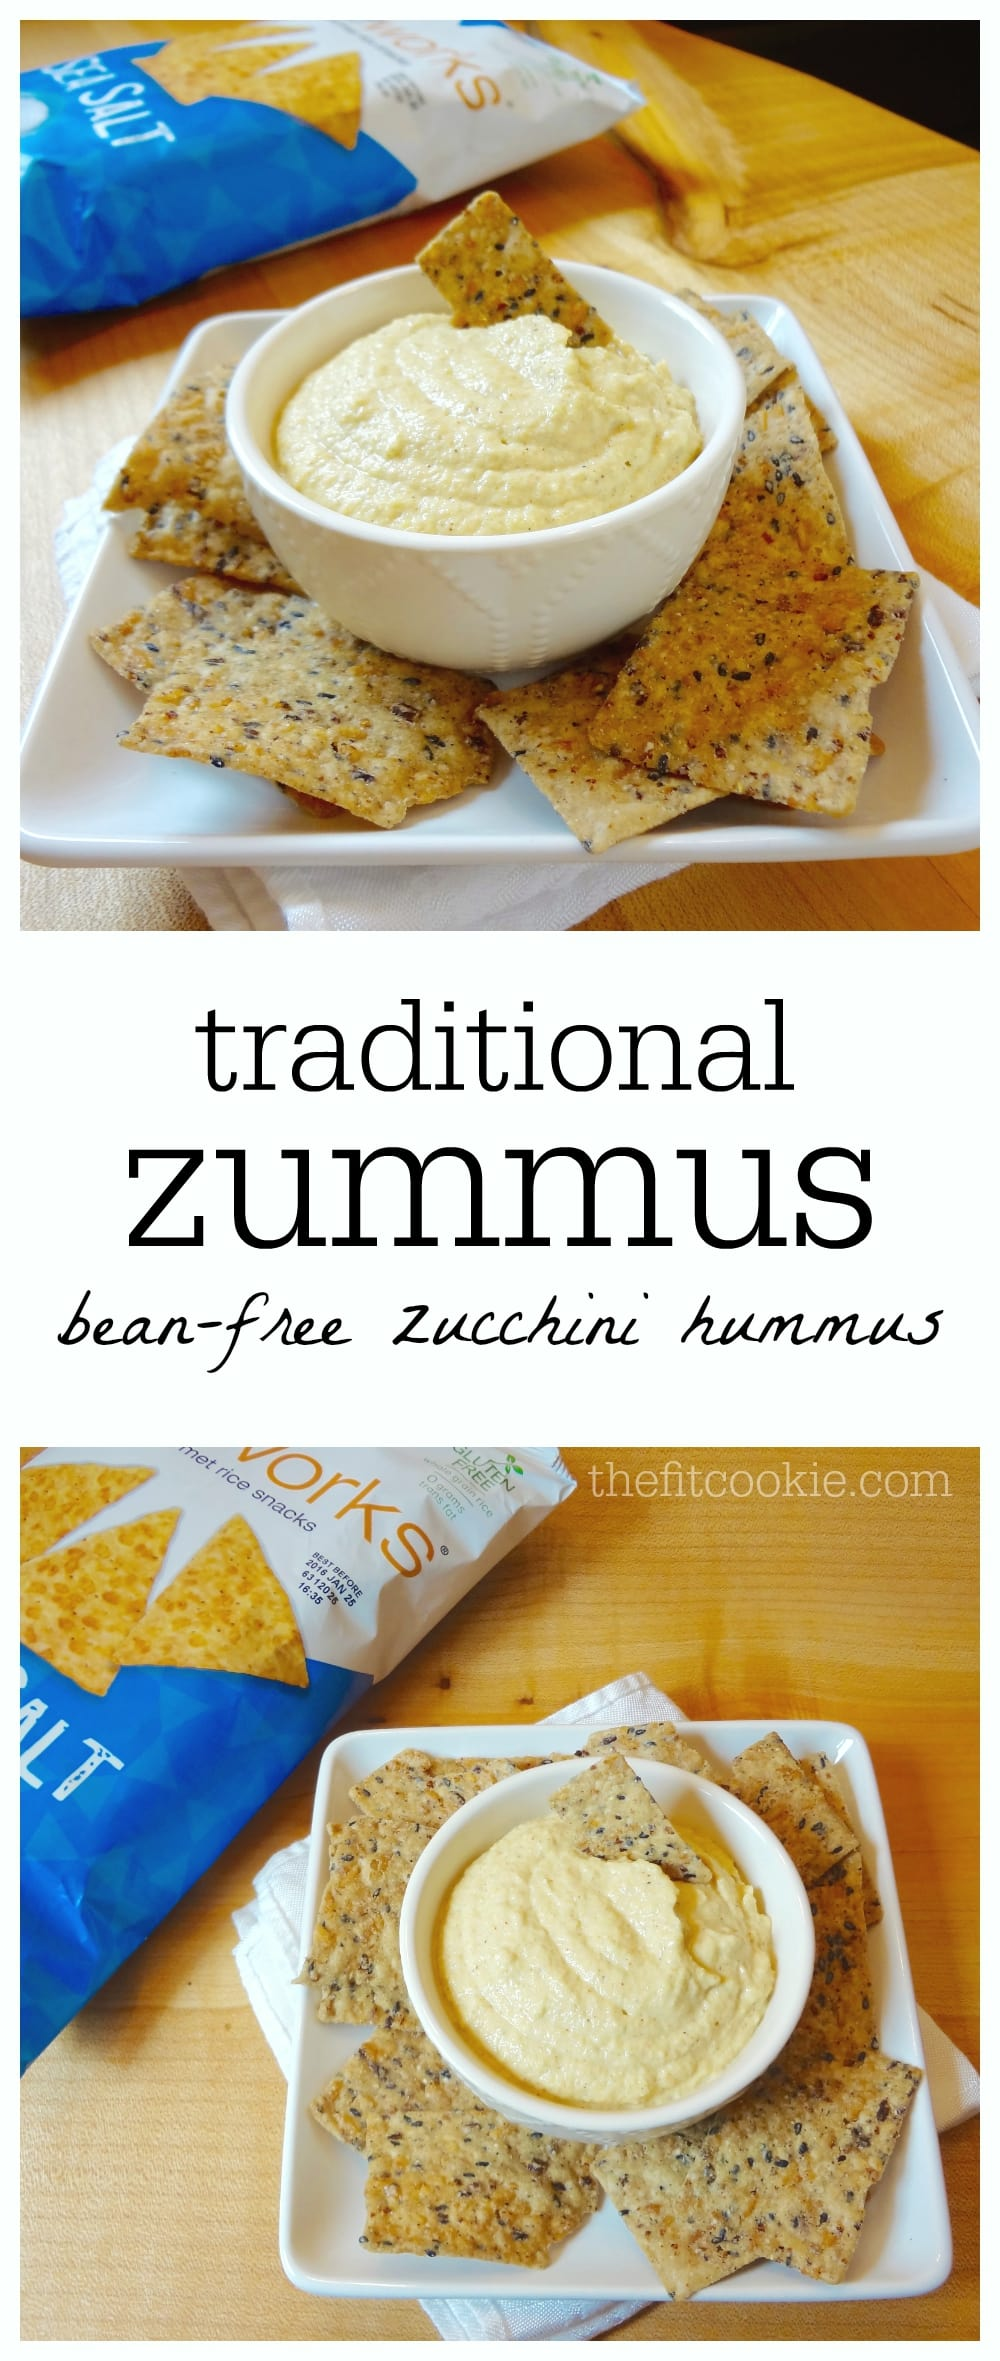 Traditional Zummus (Zucchini Hummus) recipe - {AD} @Walmart #gfwalmart @Riceworks #glutenfree #vegan #allergyfriendly #recipe